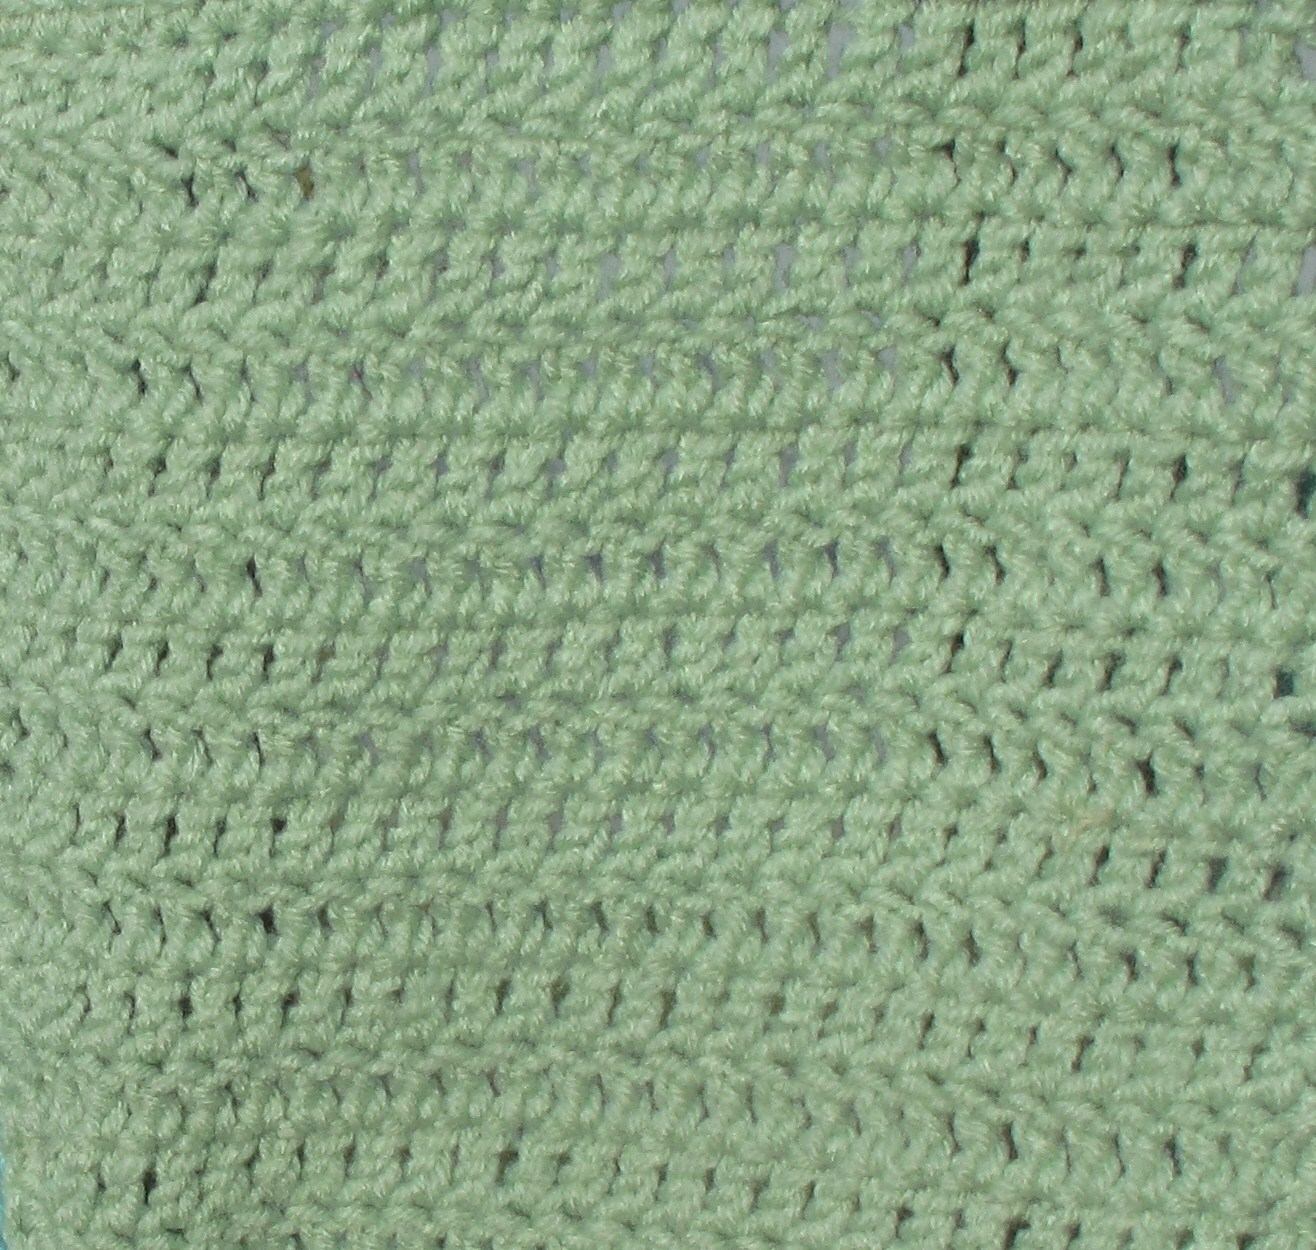 ReCrochetions: Sampler Square #2 - Double Crochet (dc)